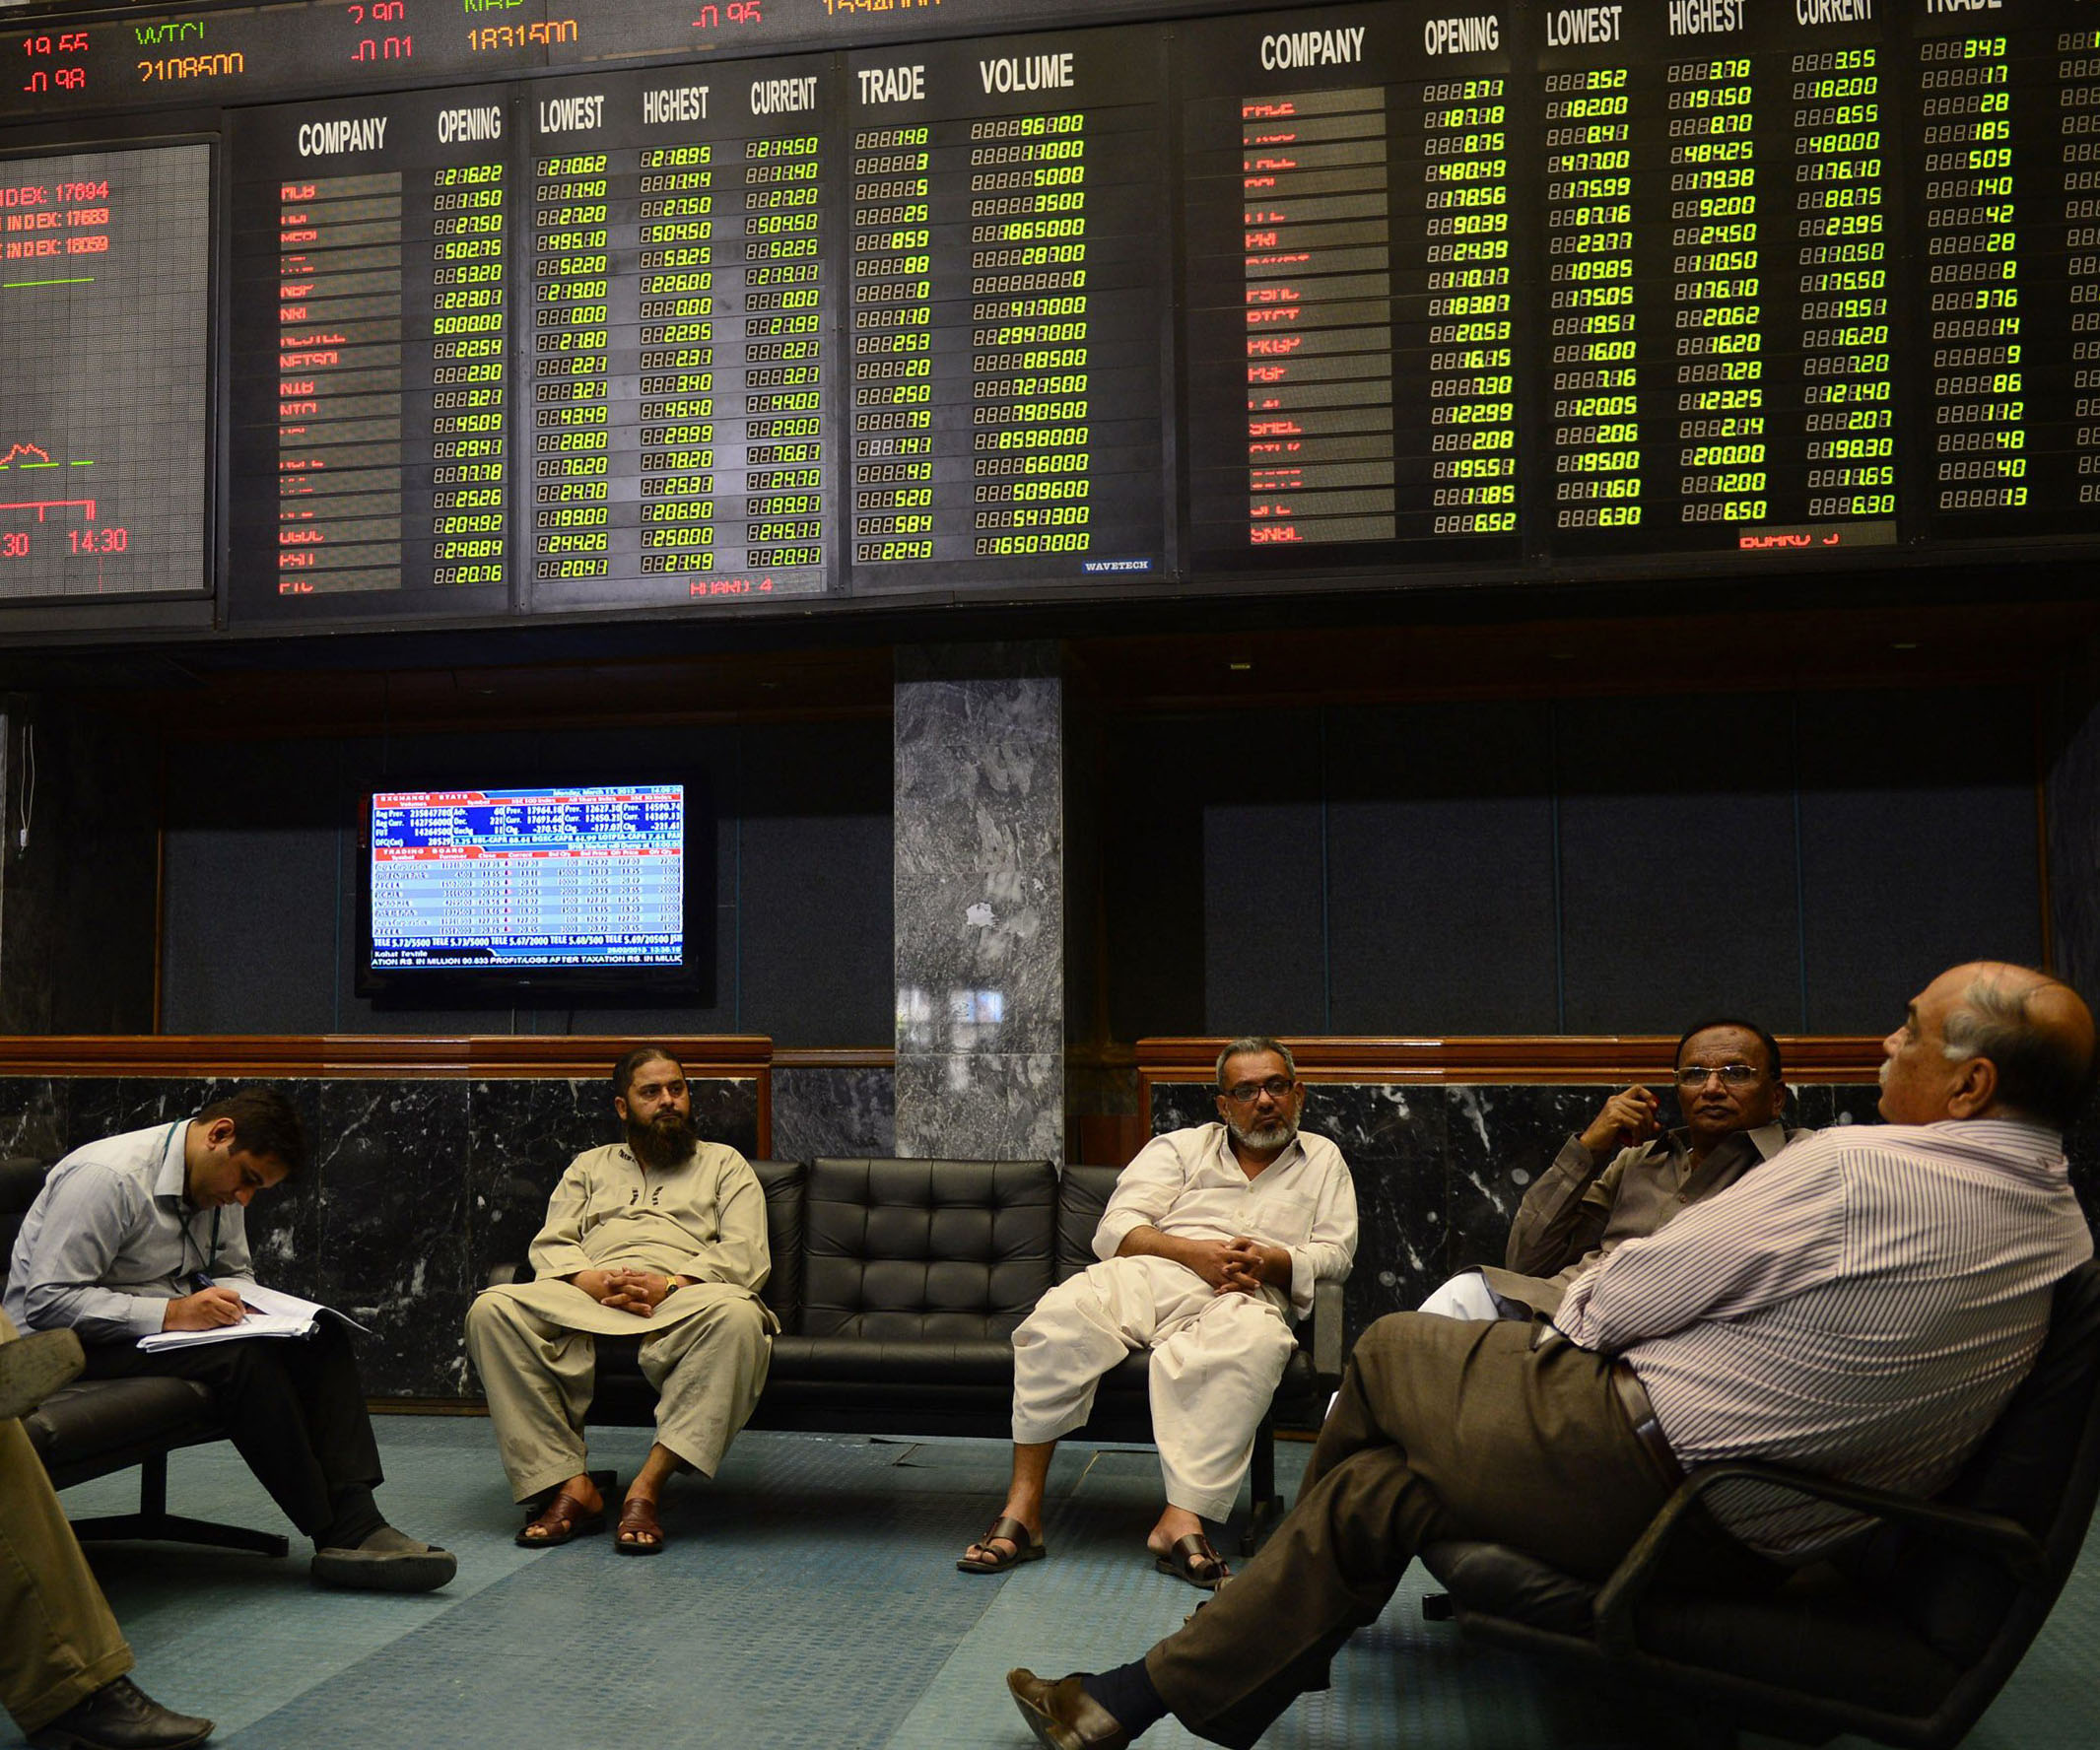 benchmark index drops 551 points to settle at 36 579 32 photo afp